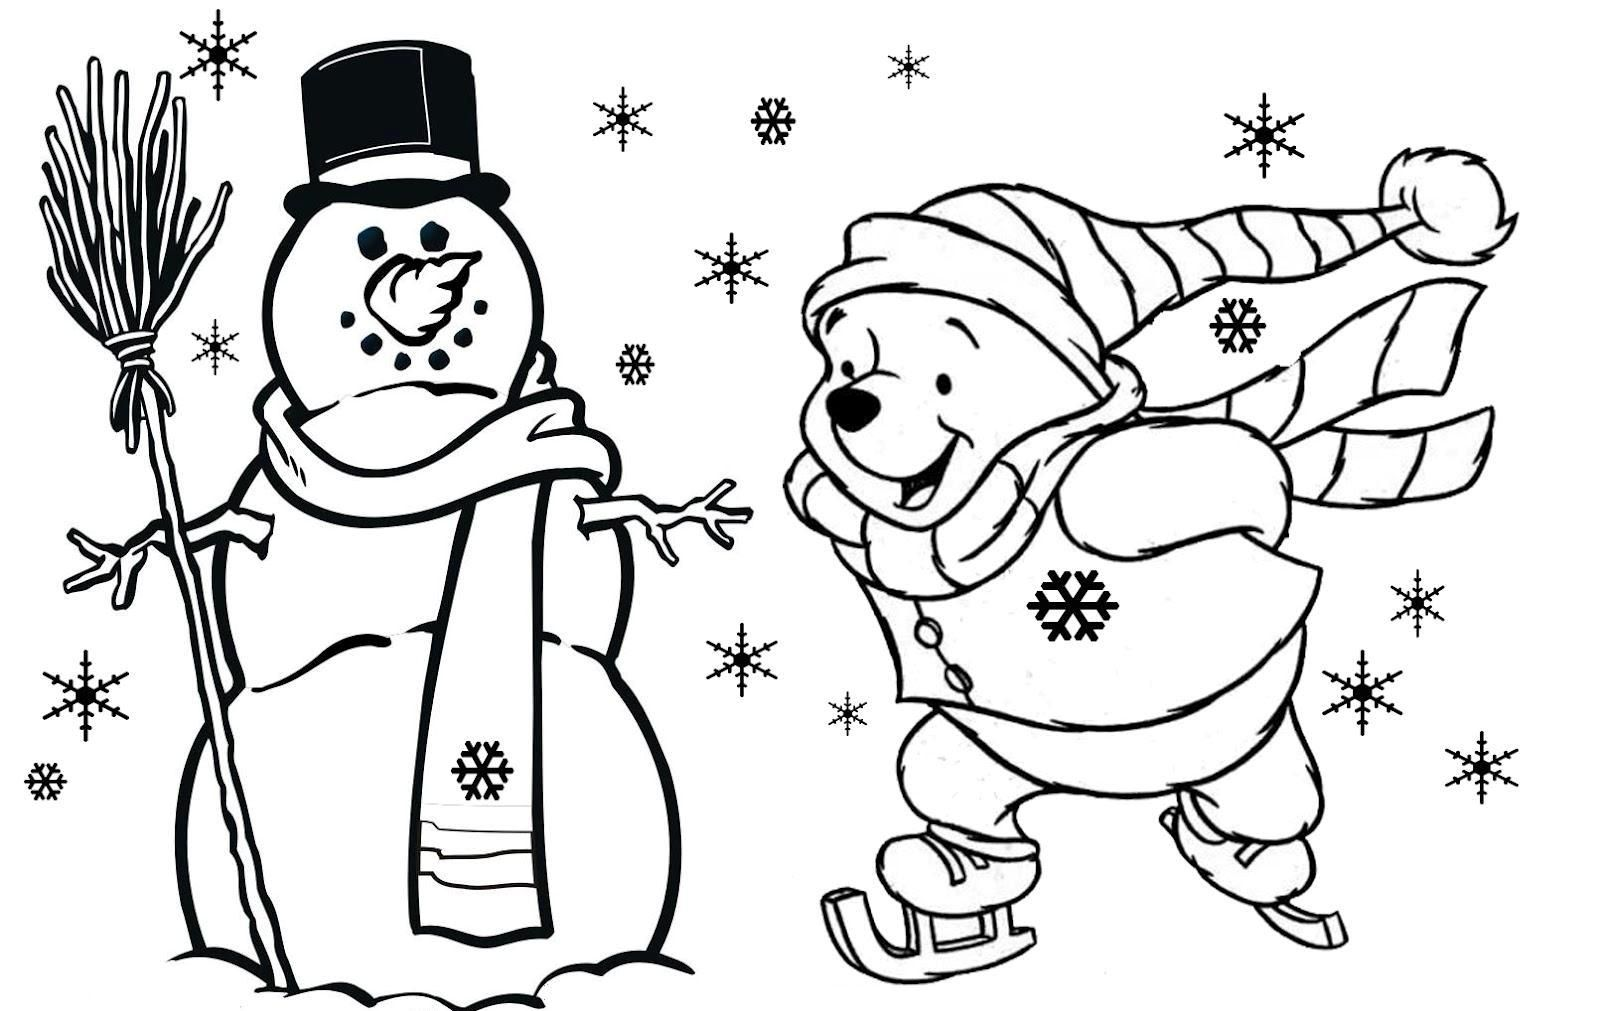 Christmas Coloring Pages To Print Free | Best Quotes & Wishes Ever